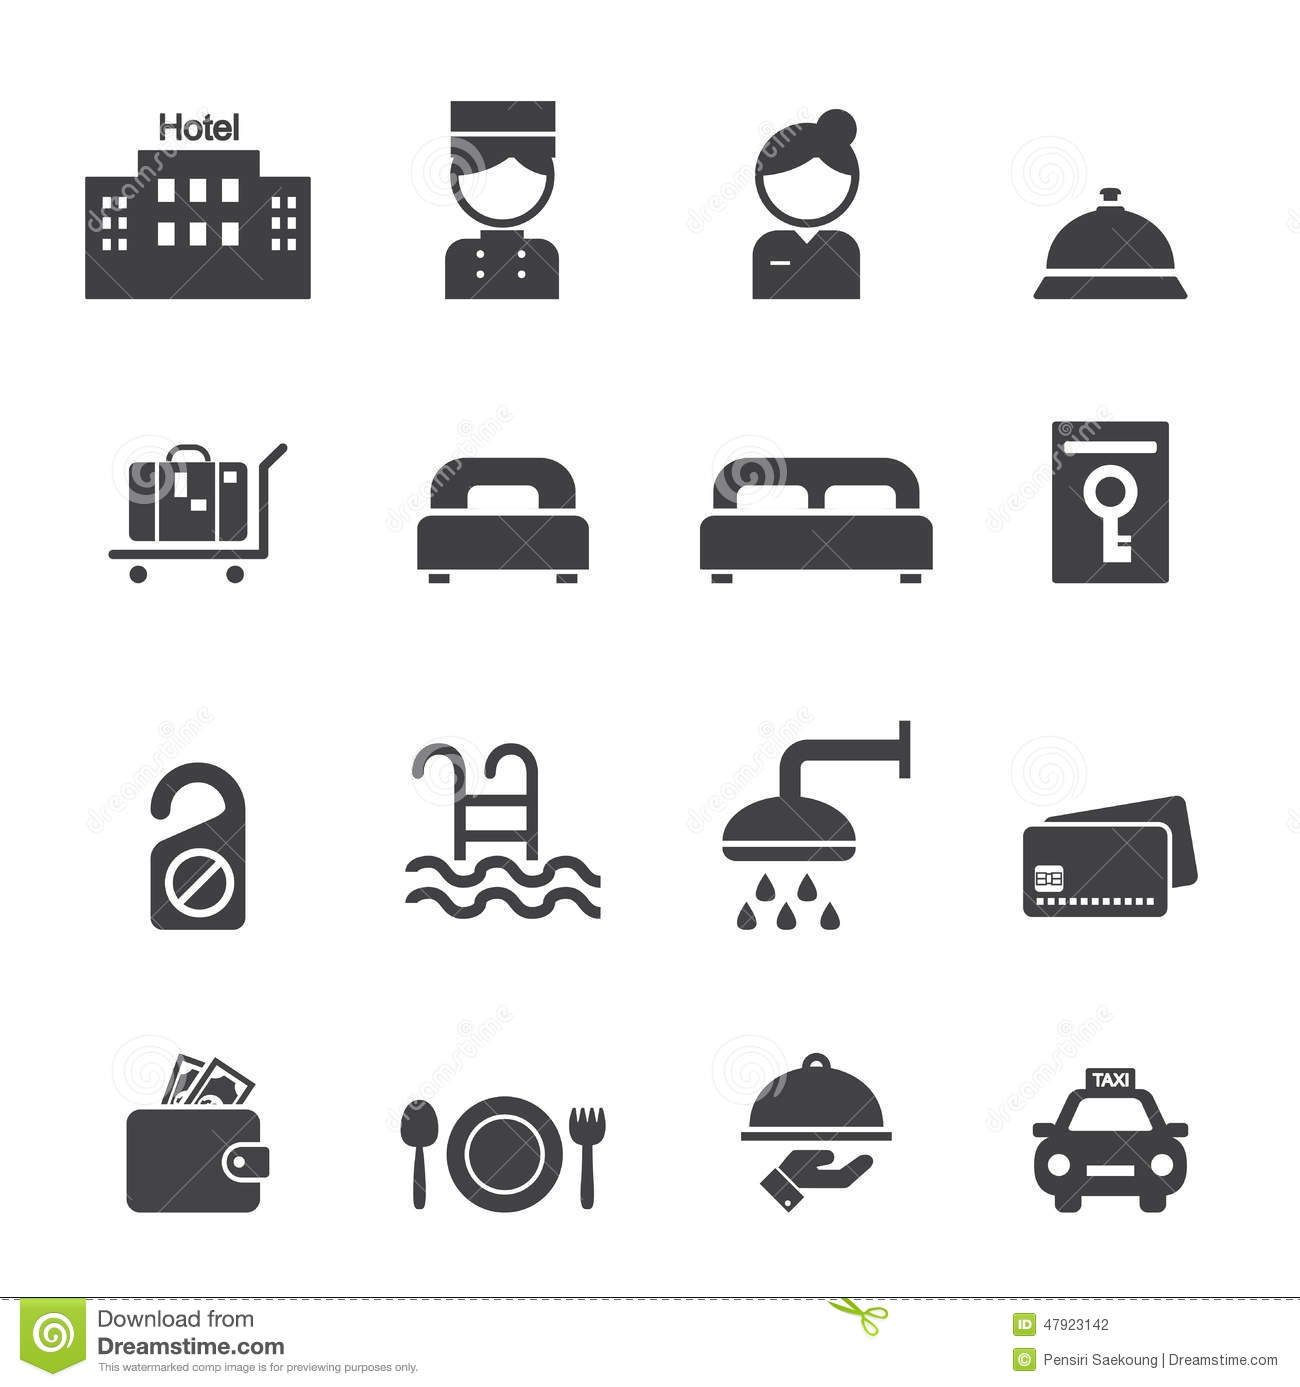 Vector Illustration Web Designs: Hotel Icon Stock Photo. Image Of Icon, Credit, Card, Domed